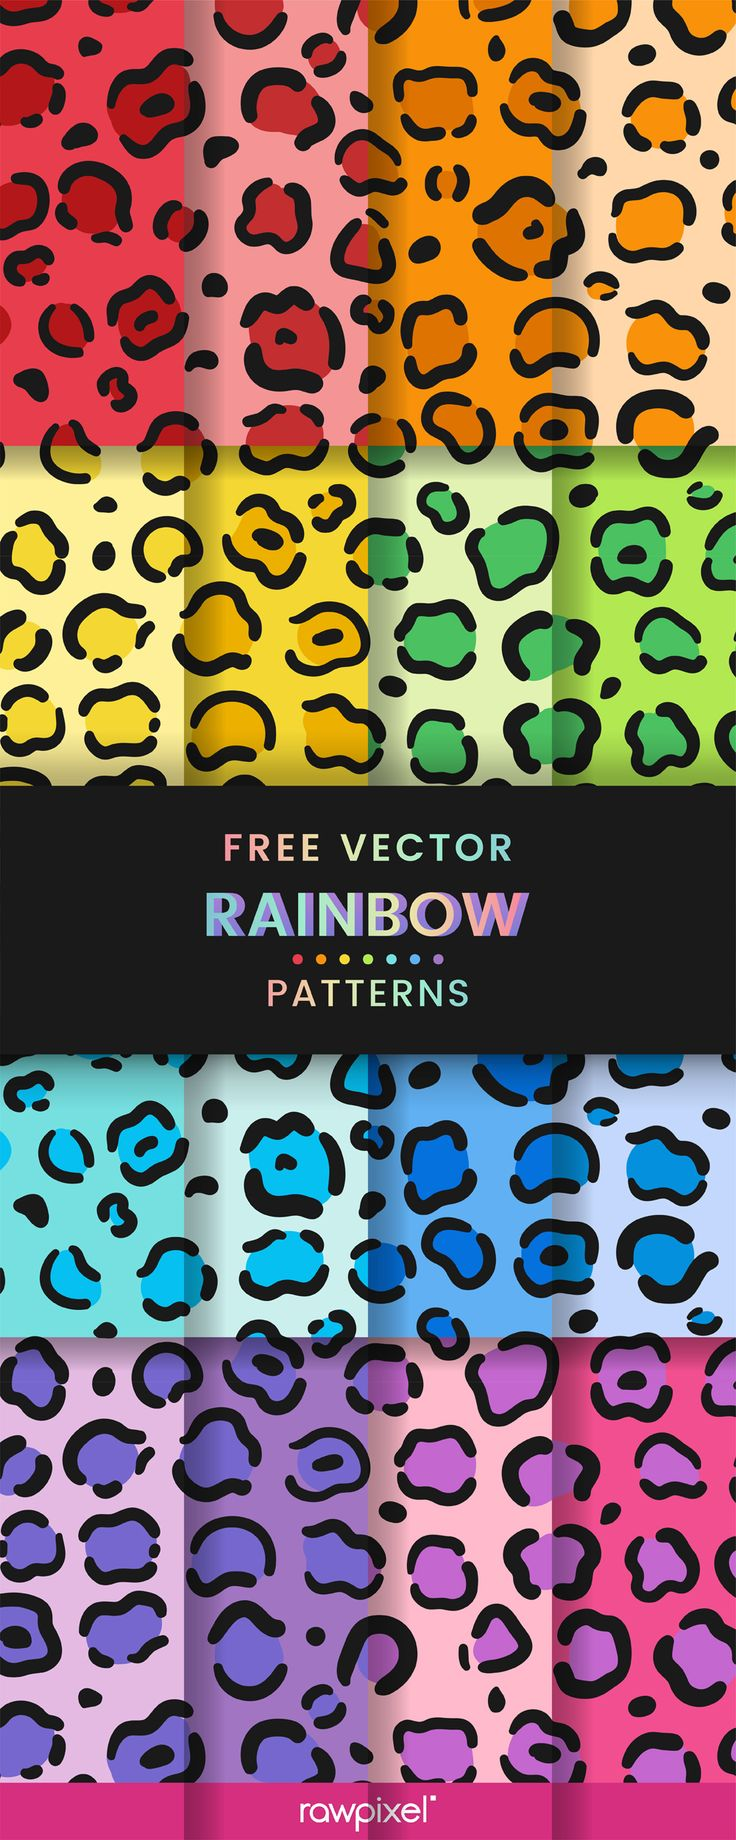 Vectors and stock photos that don't suck. Download colorful and beautiful free a…